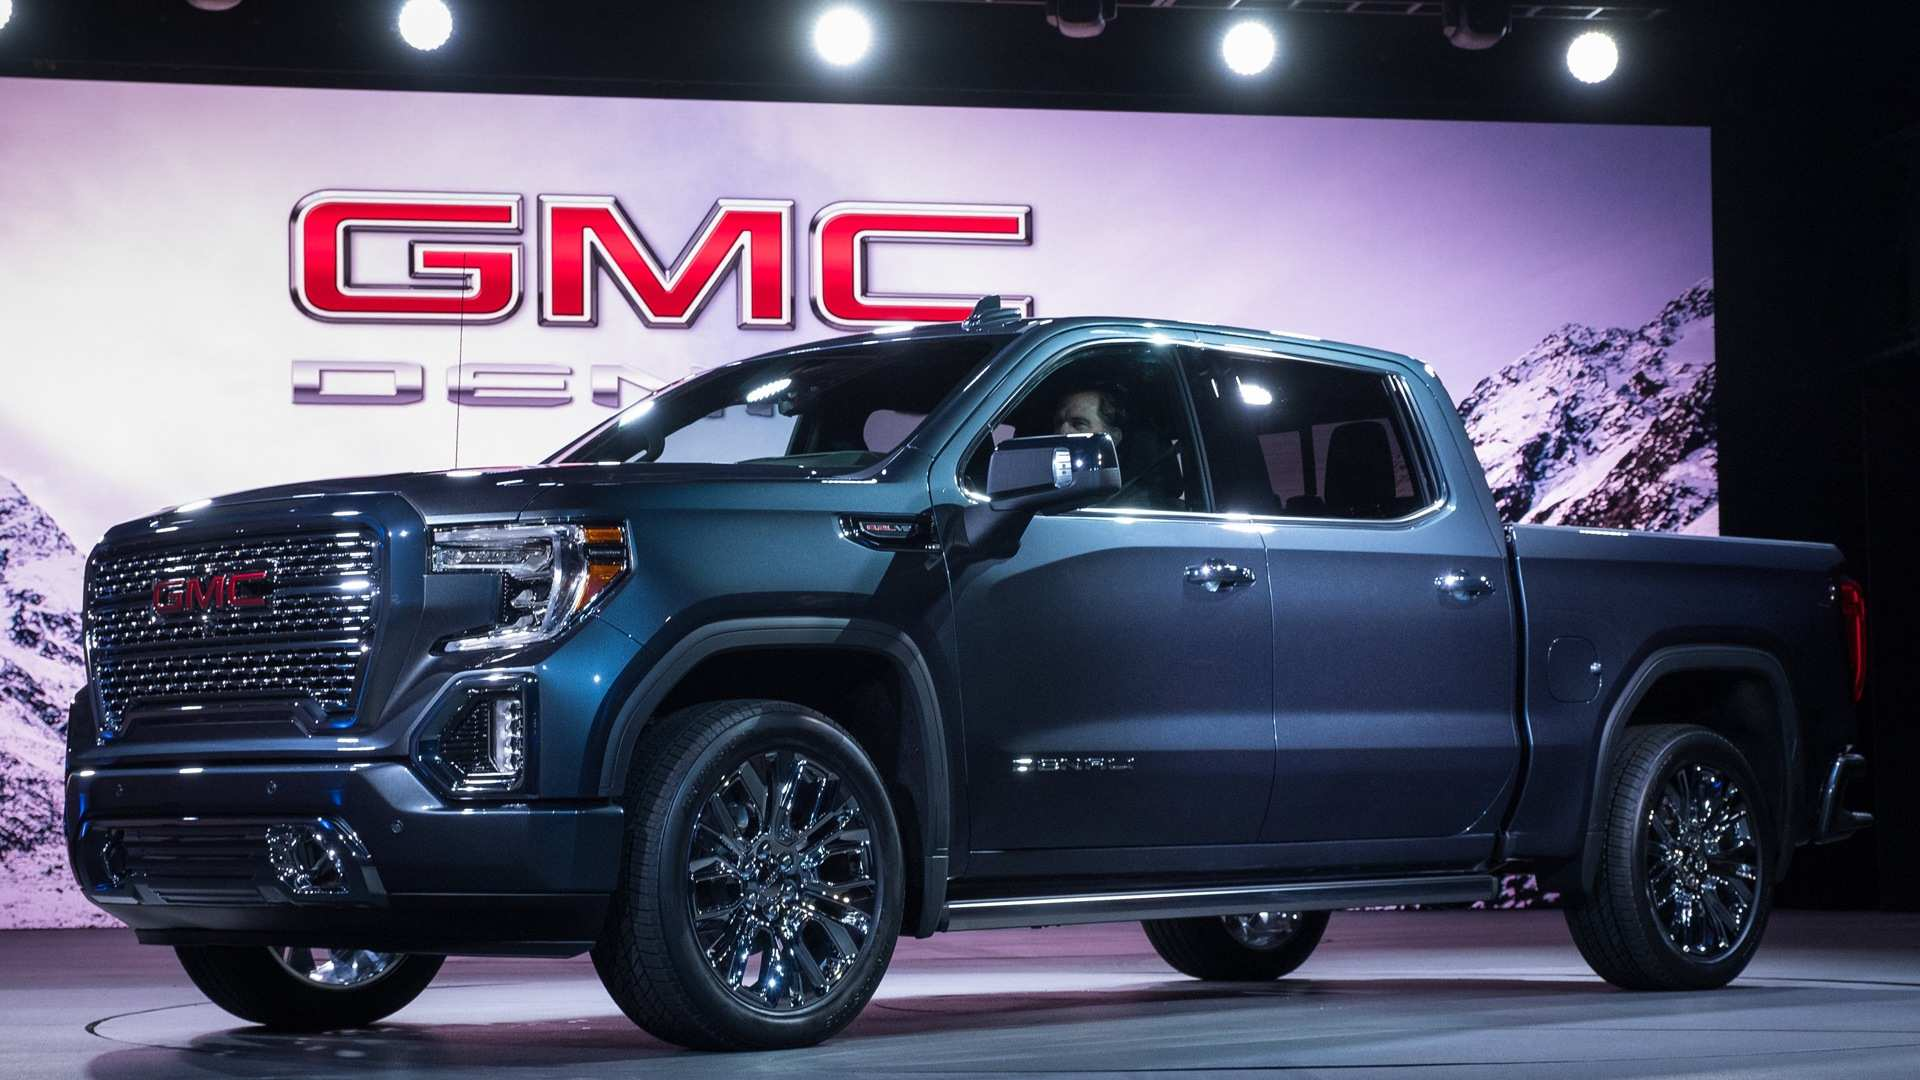 32 New Gmc Pickup 2020 Redesign and Concept for Gmc Pickup 2020